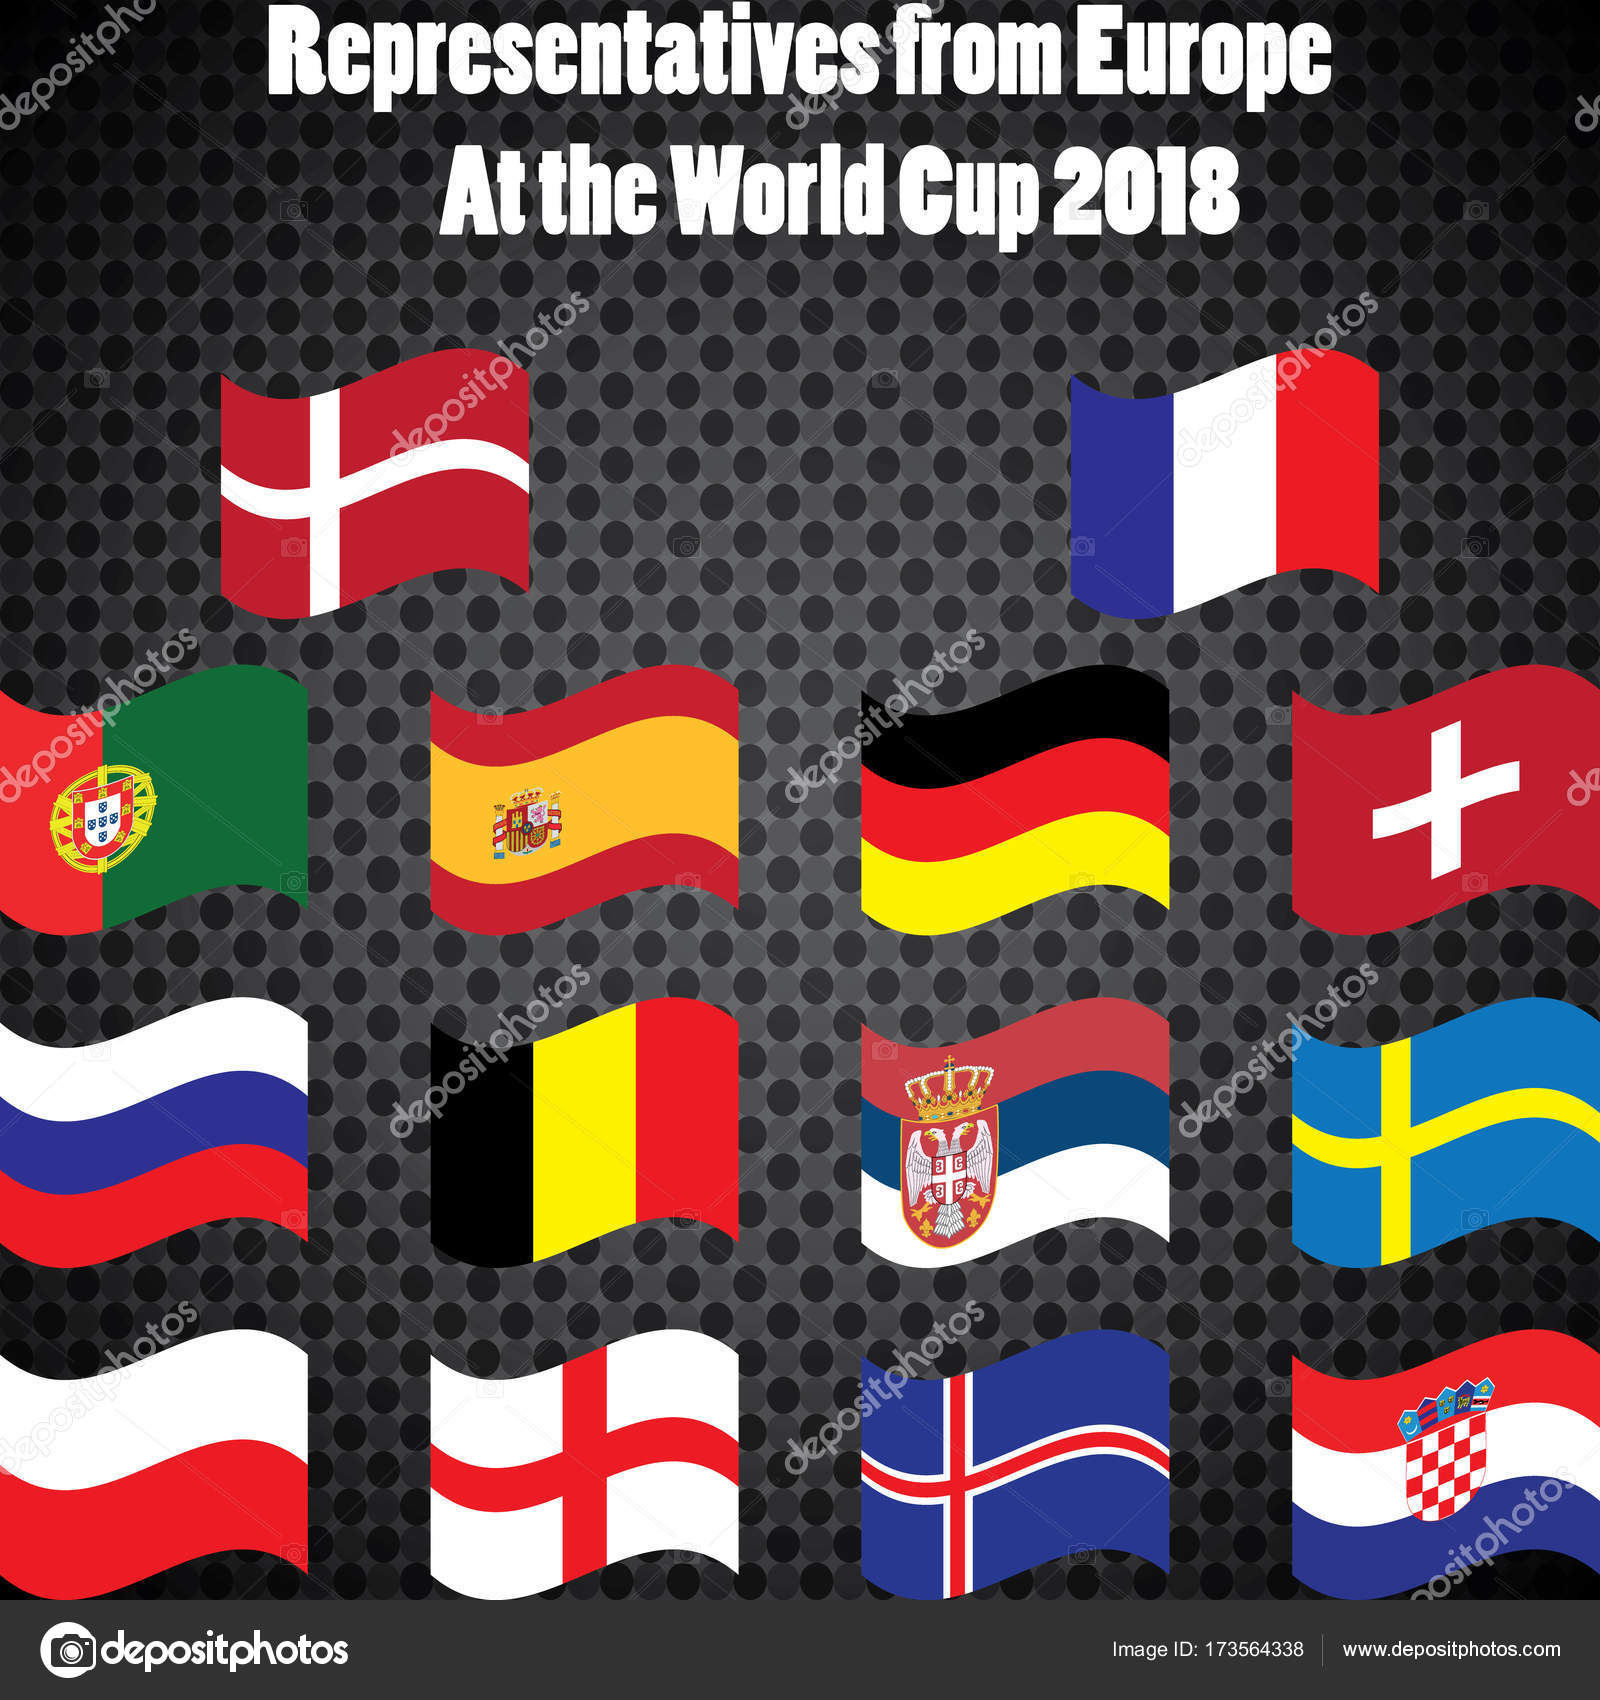 Best Europe World Cup 2018 - depositphotos_173564338-stock-illustration-representatives-of-europe-for-the  Perfect Image Reference_119468 .jpg